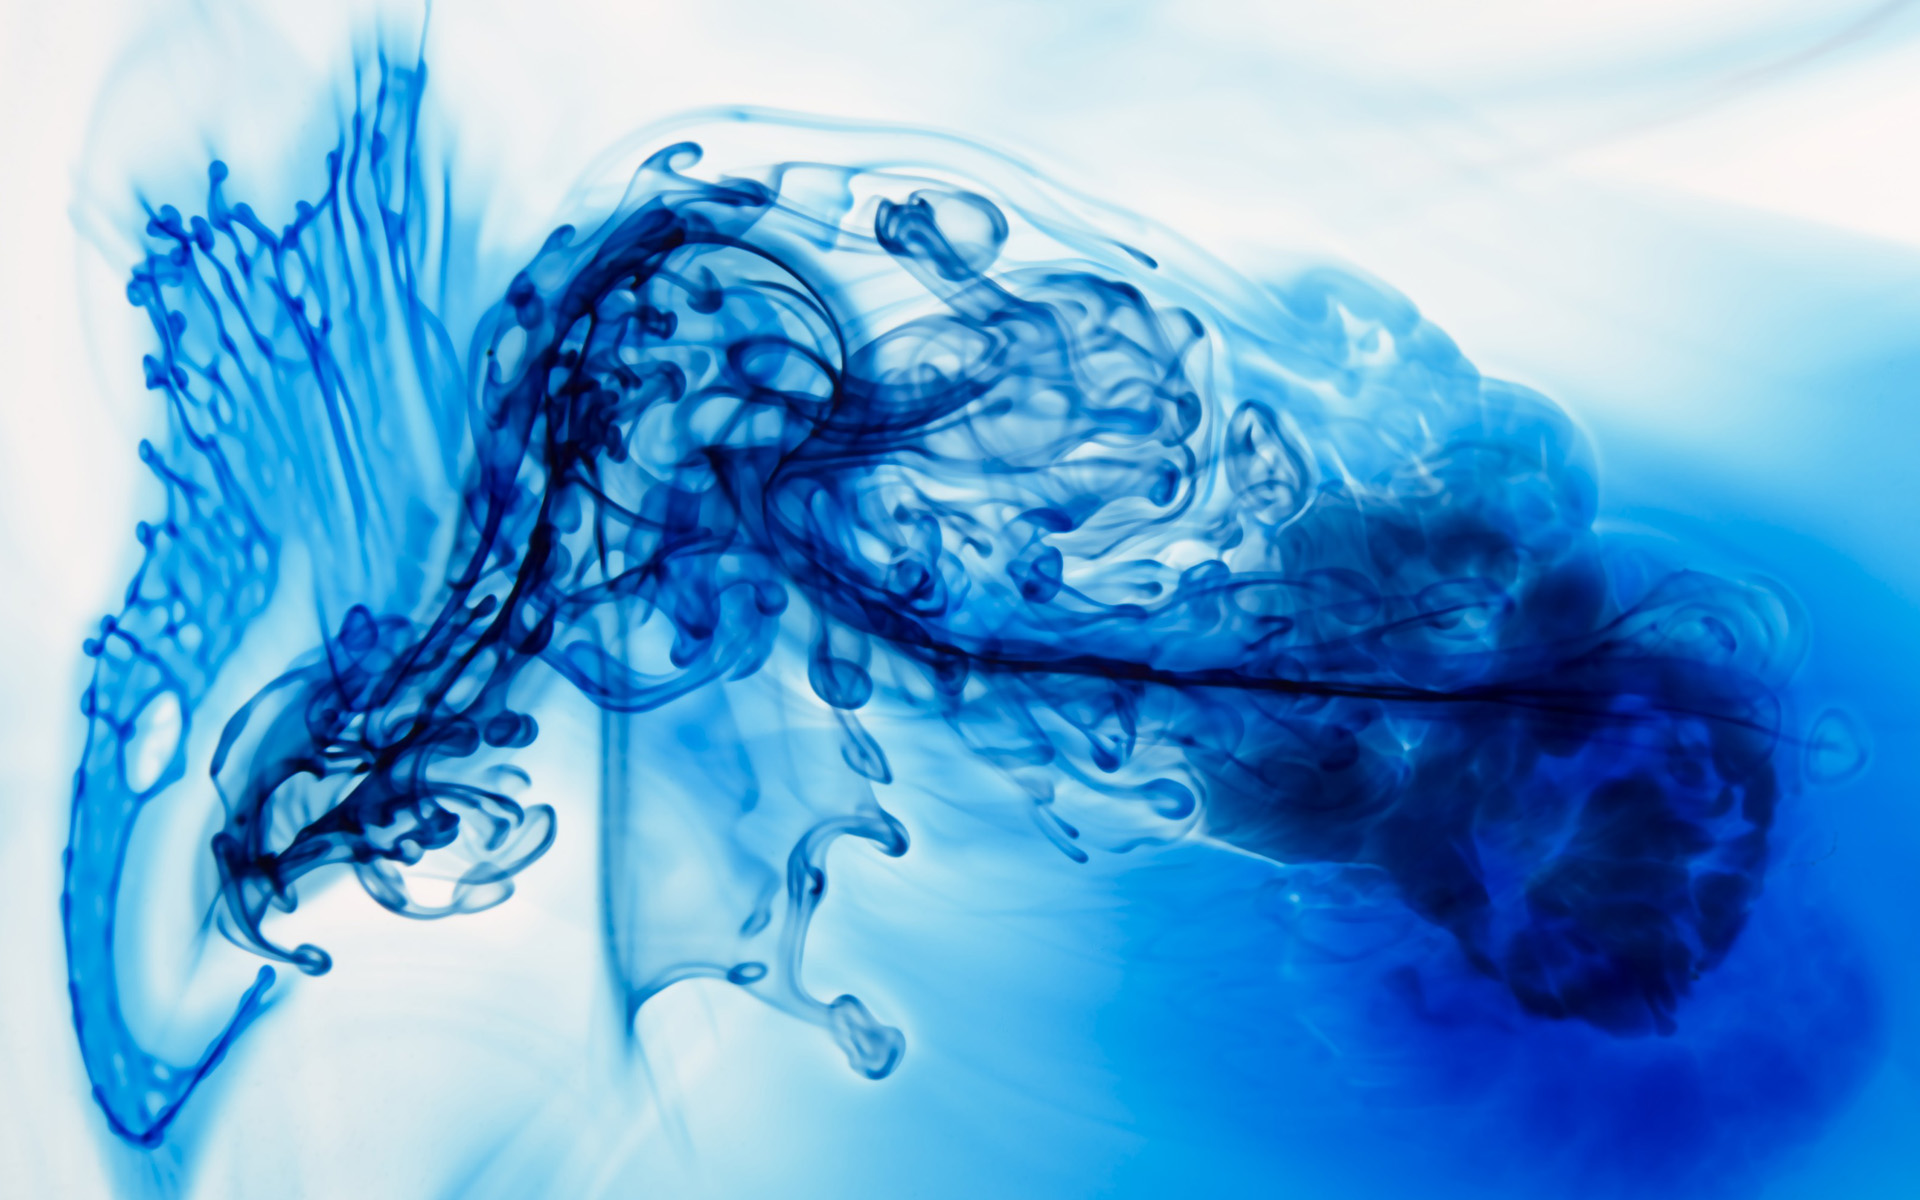 Abstract Wallpapers - Ink In Water | HD Wallpapers